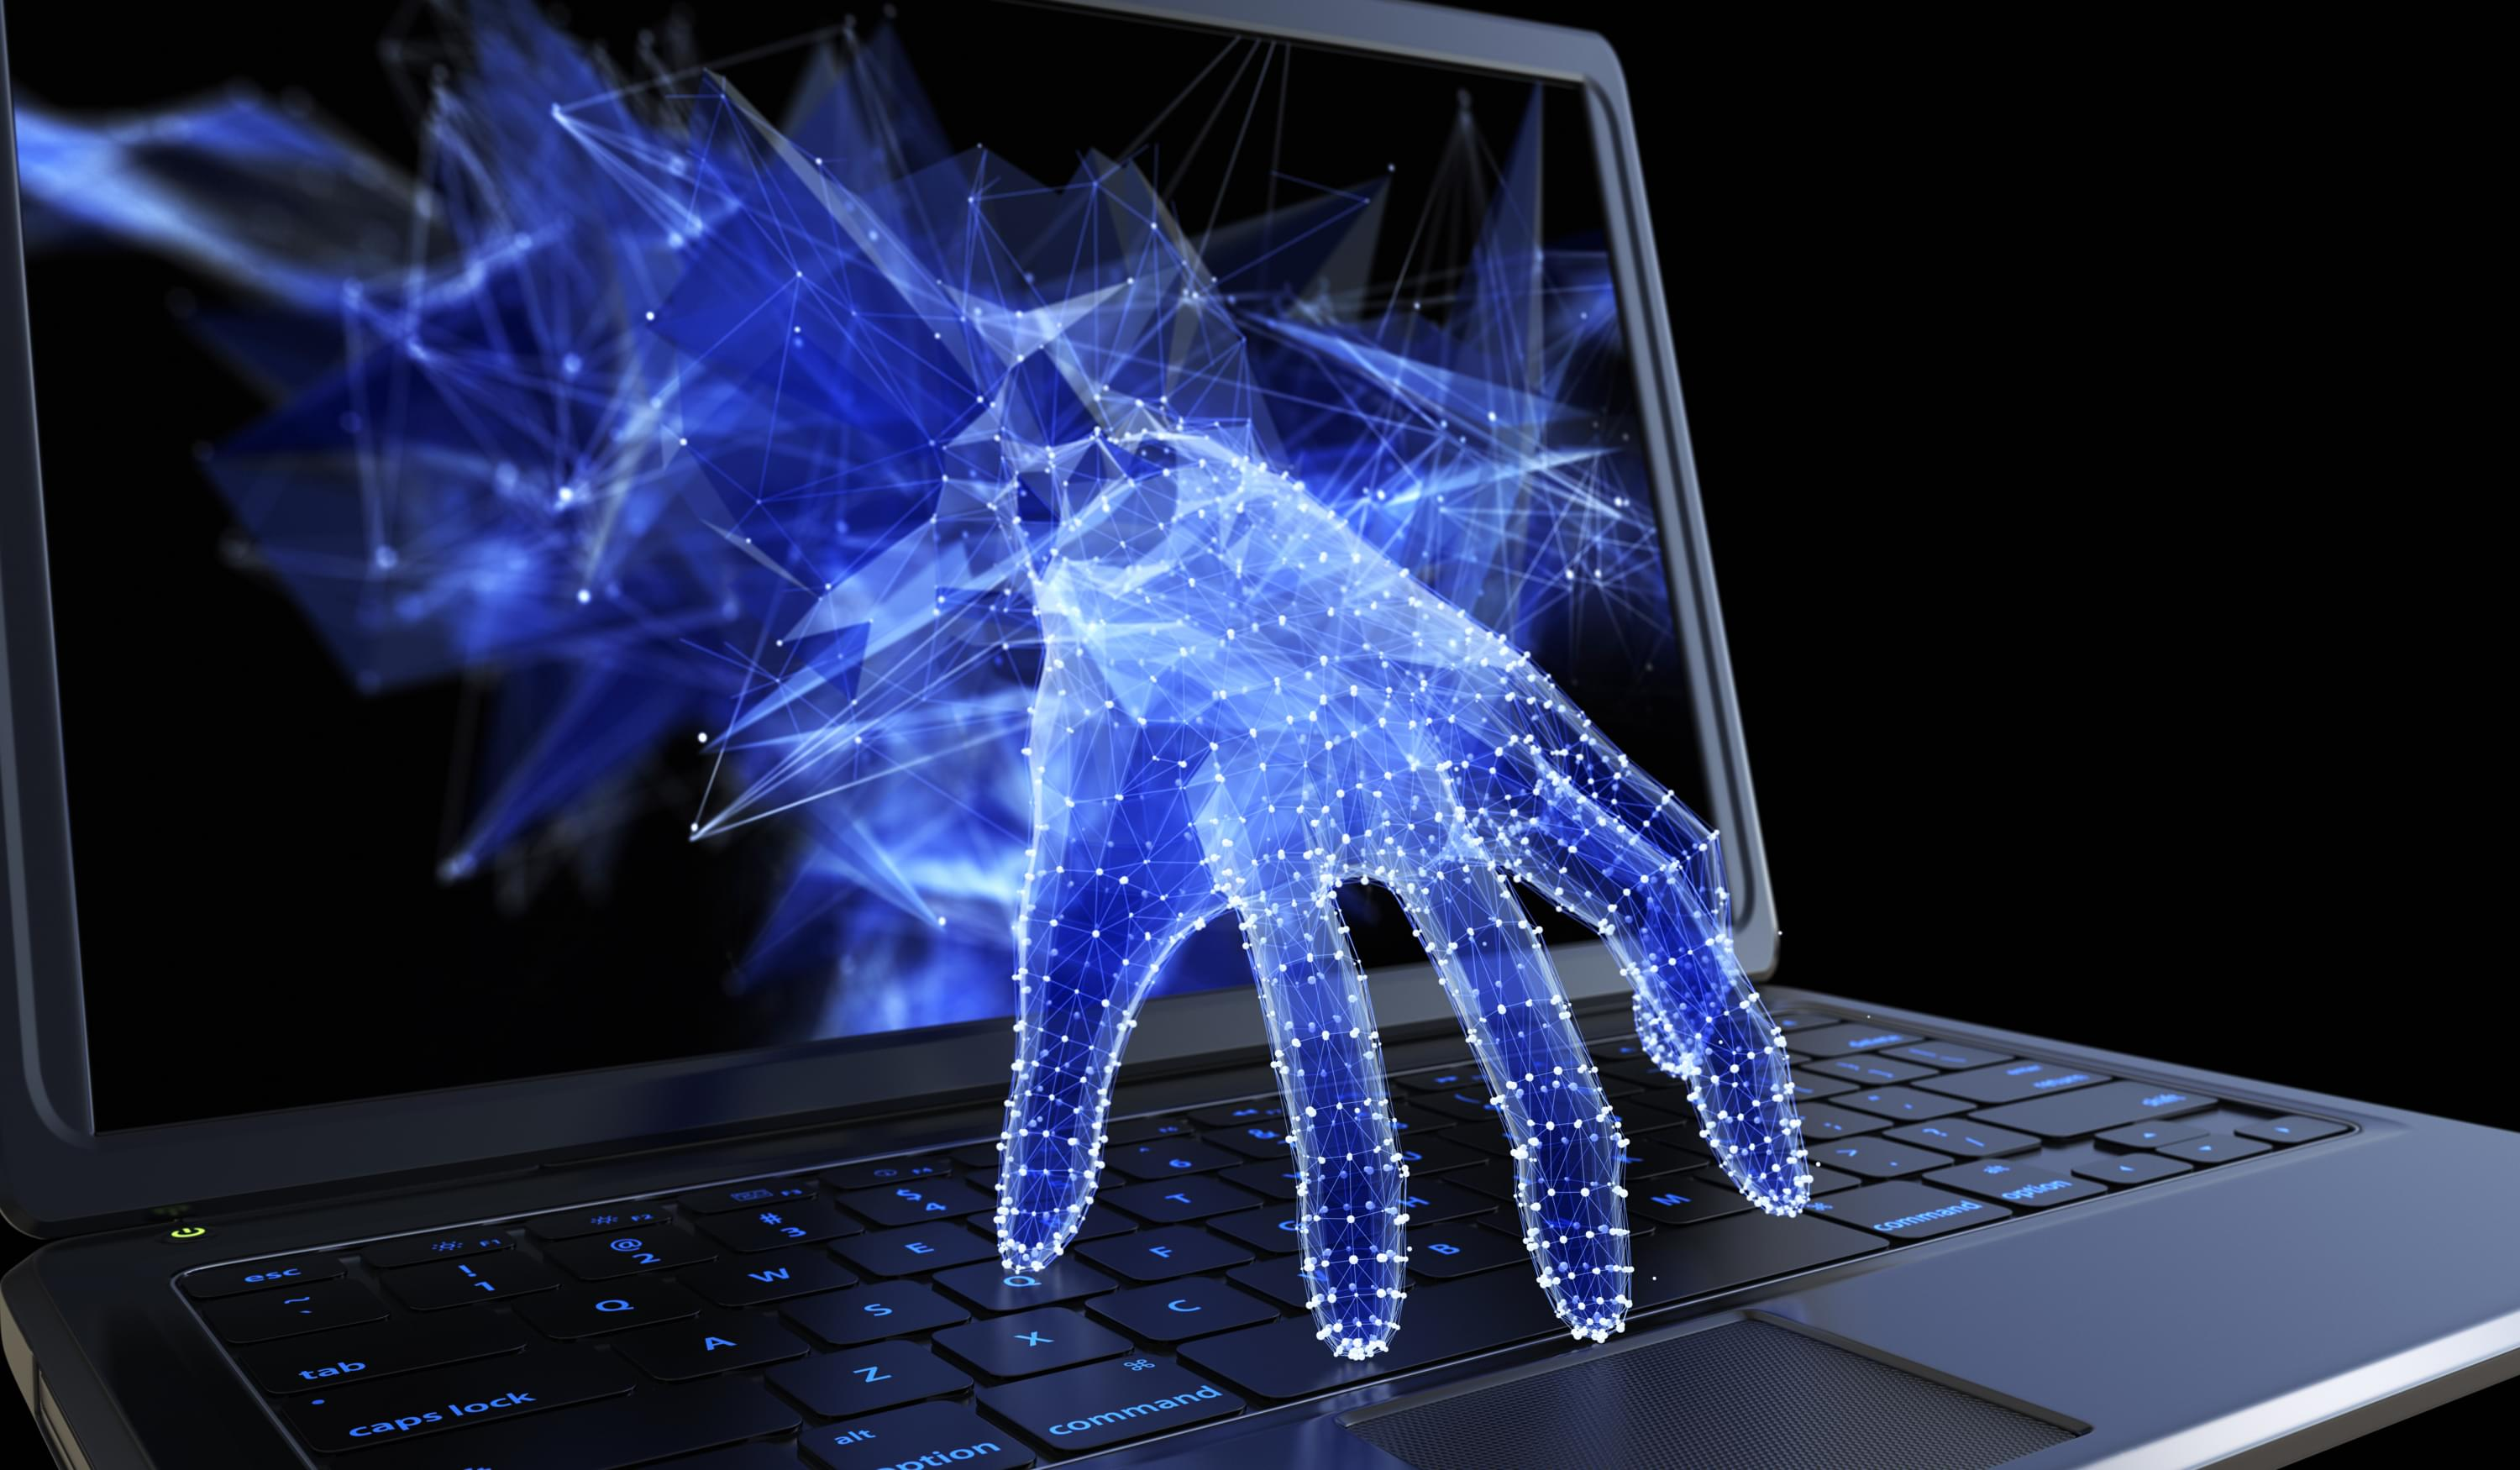 Cyber hand simulation coming out of laptop screen